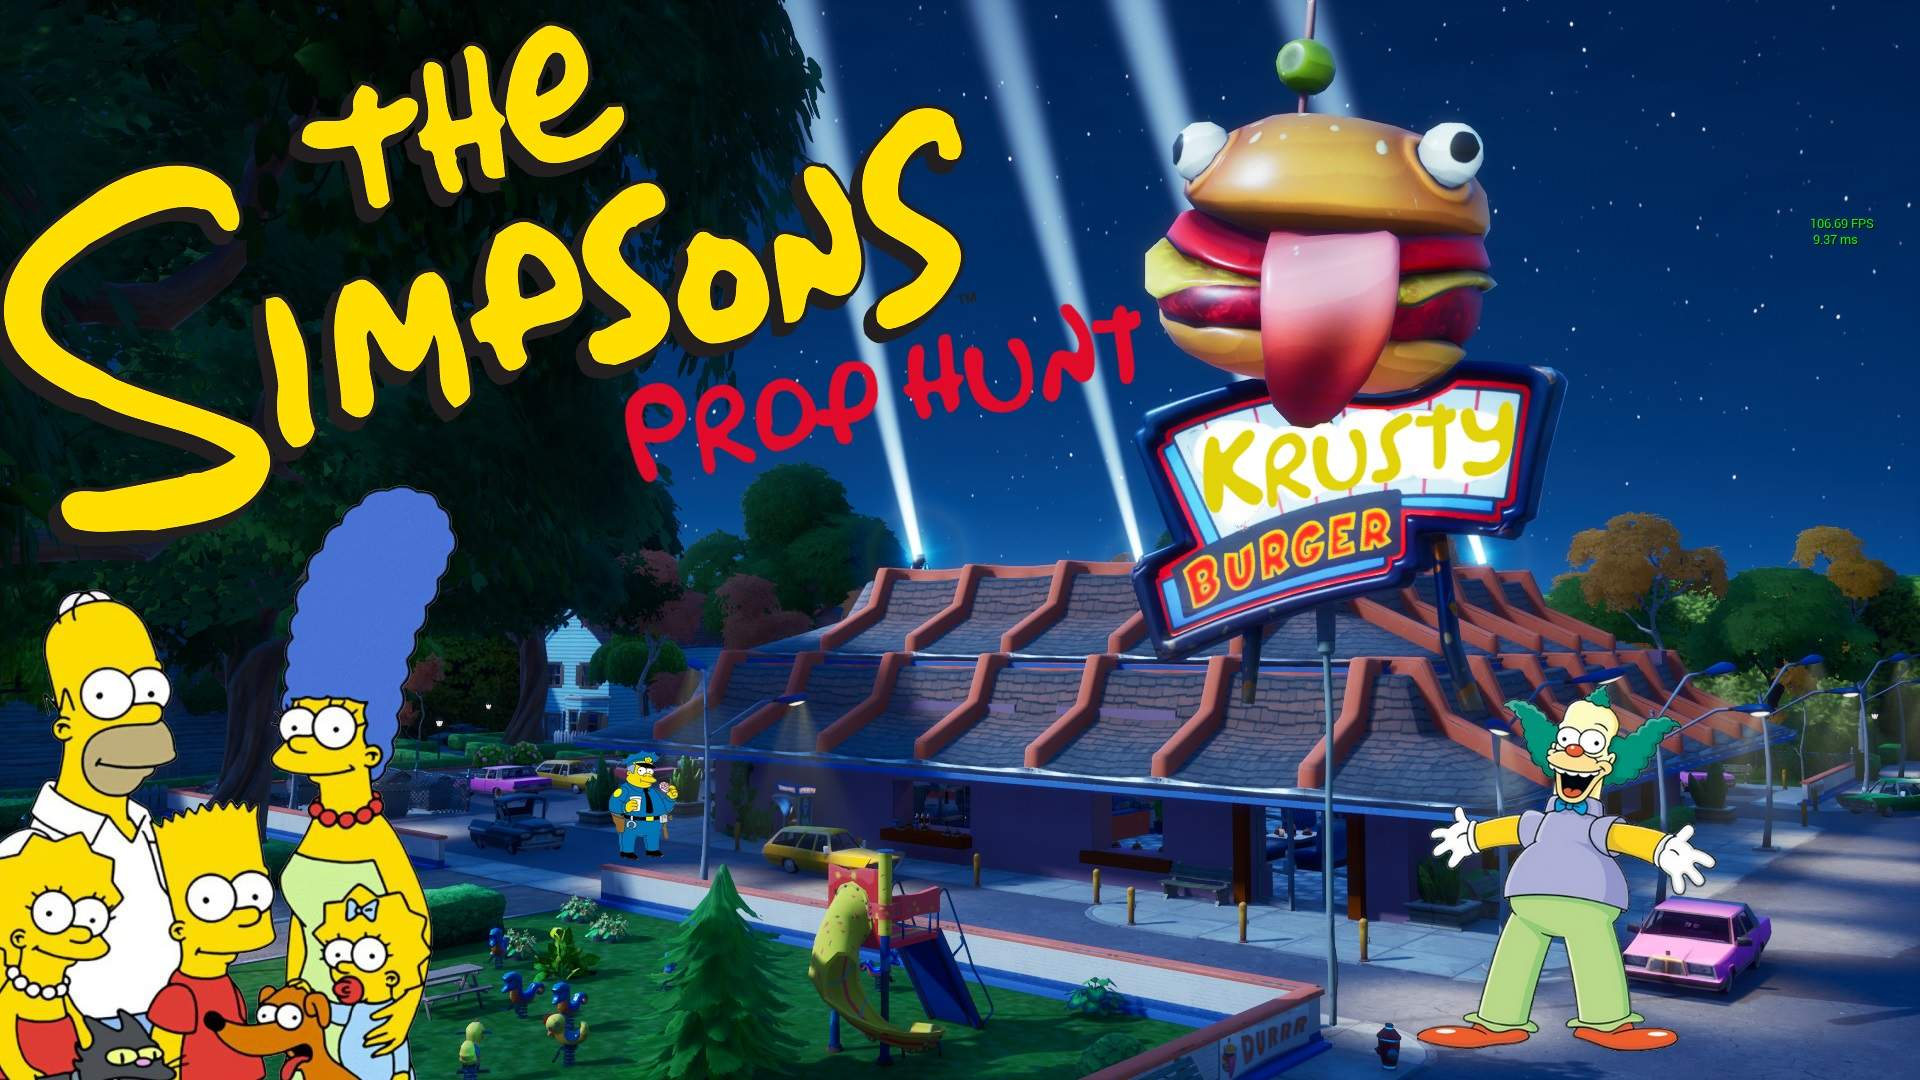 THE SIMPSONS - KRUSTY BURGER